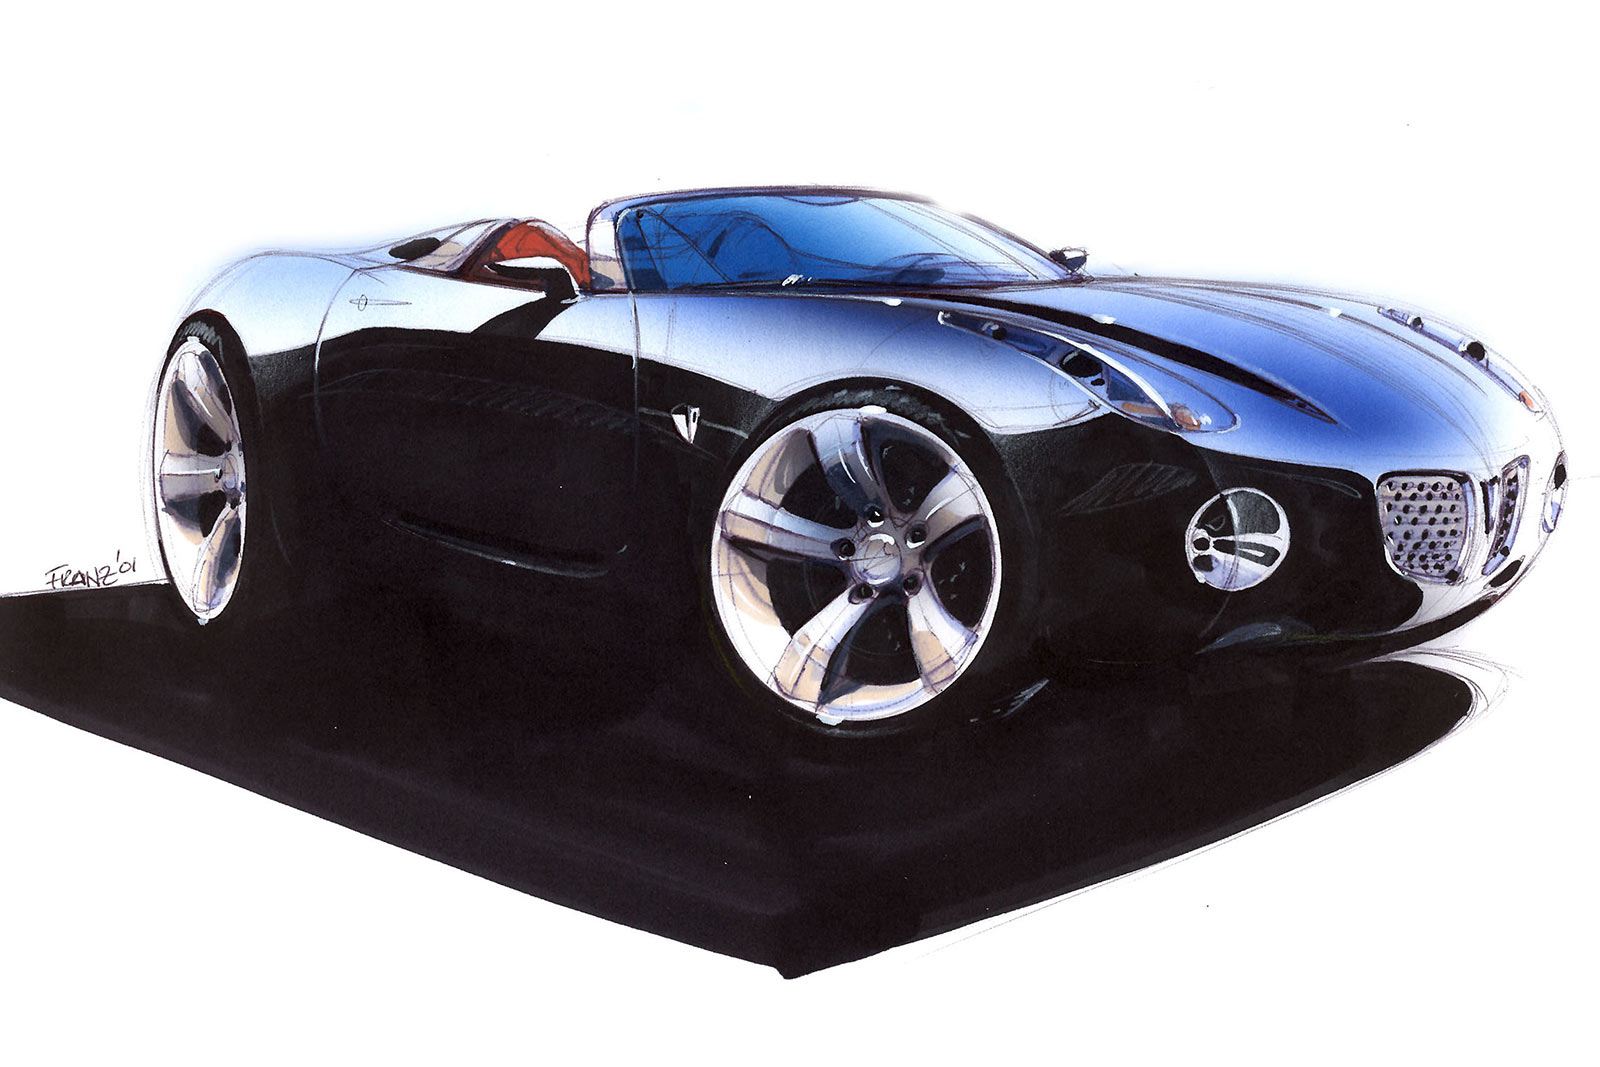 Pontiac Solstice Concept Design Sketch on Volvo S60 Sketch